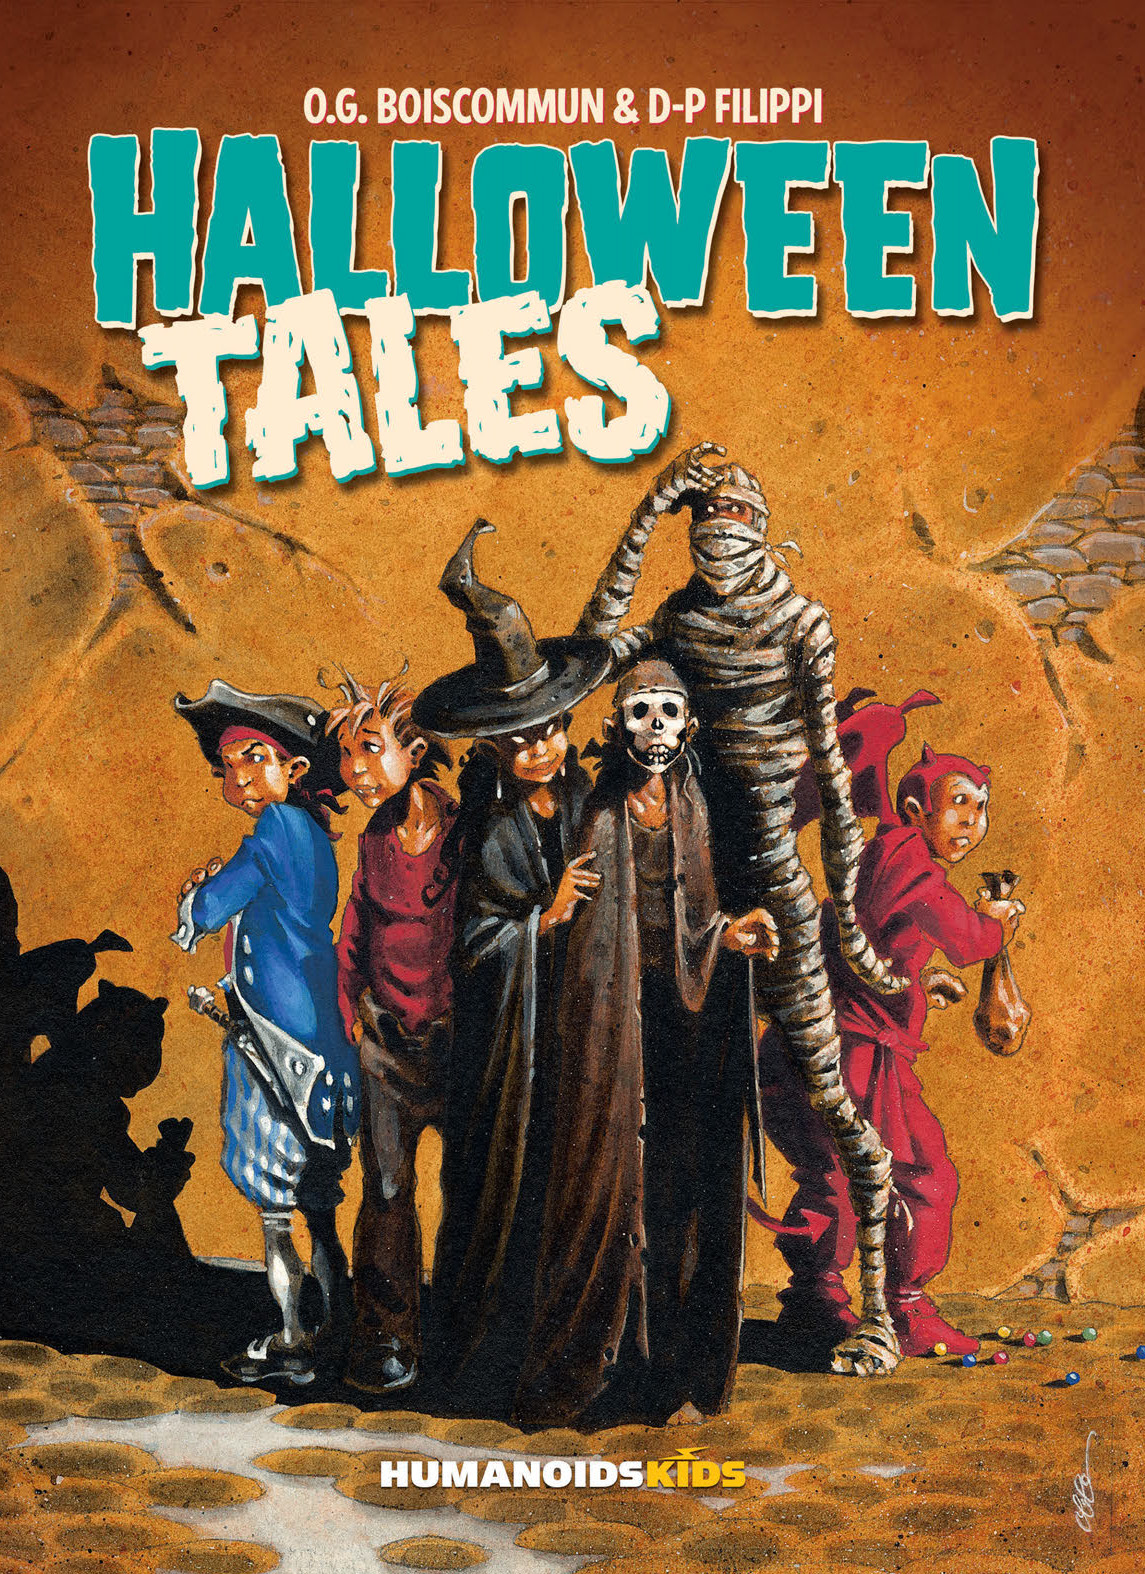 Cover to 'Halloween Tales'. Art by Olivier Boiscommun/Humanoids/Humanoids Kids